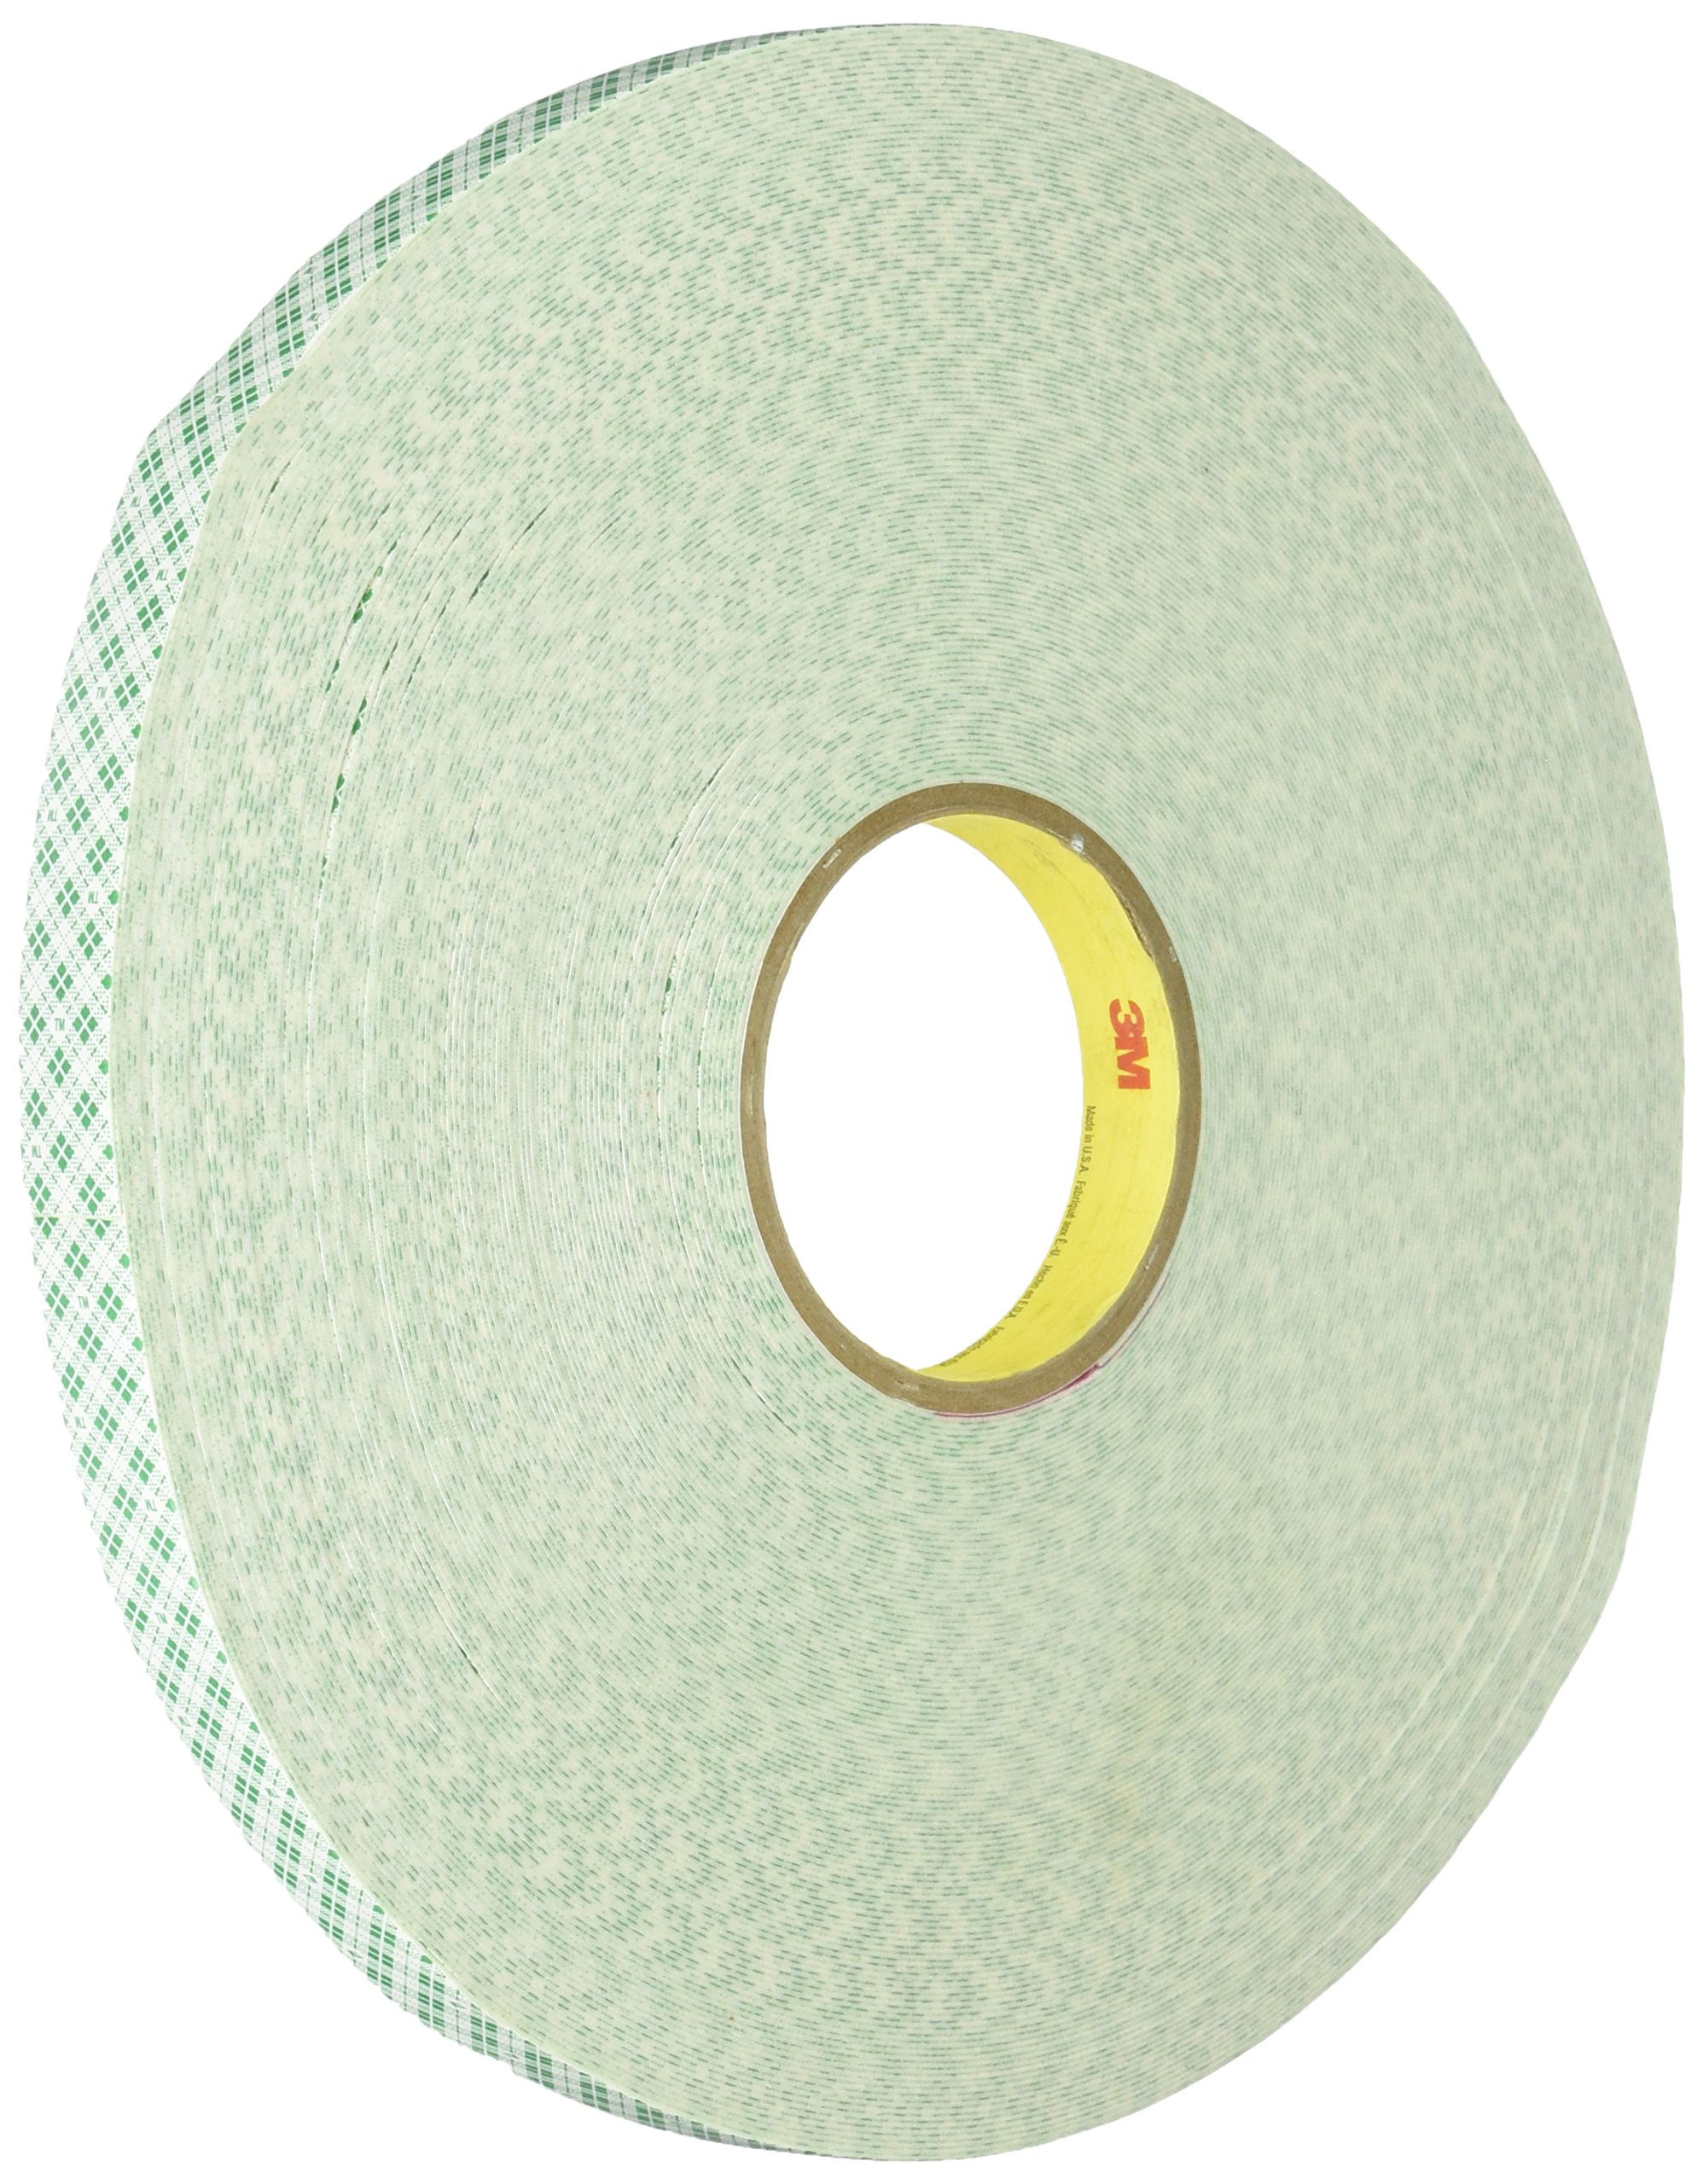 3M 4032 Double Coated Urethane Foam Tape - 0.125 in x  5 yd (15 ft) Tape Roll for Permanent Bonding. Sealing Tapes (1 Roll)